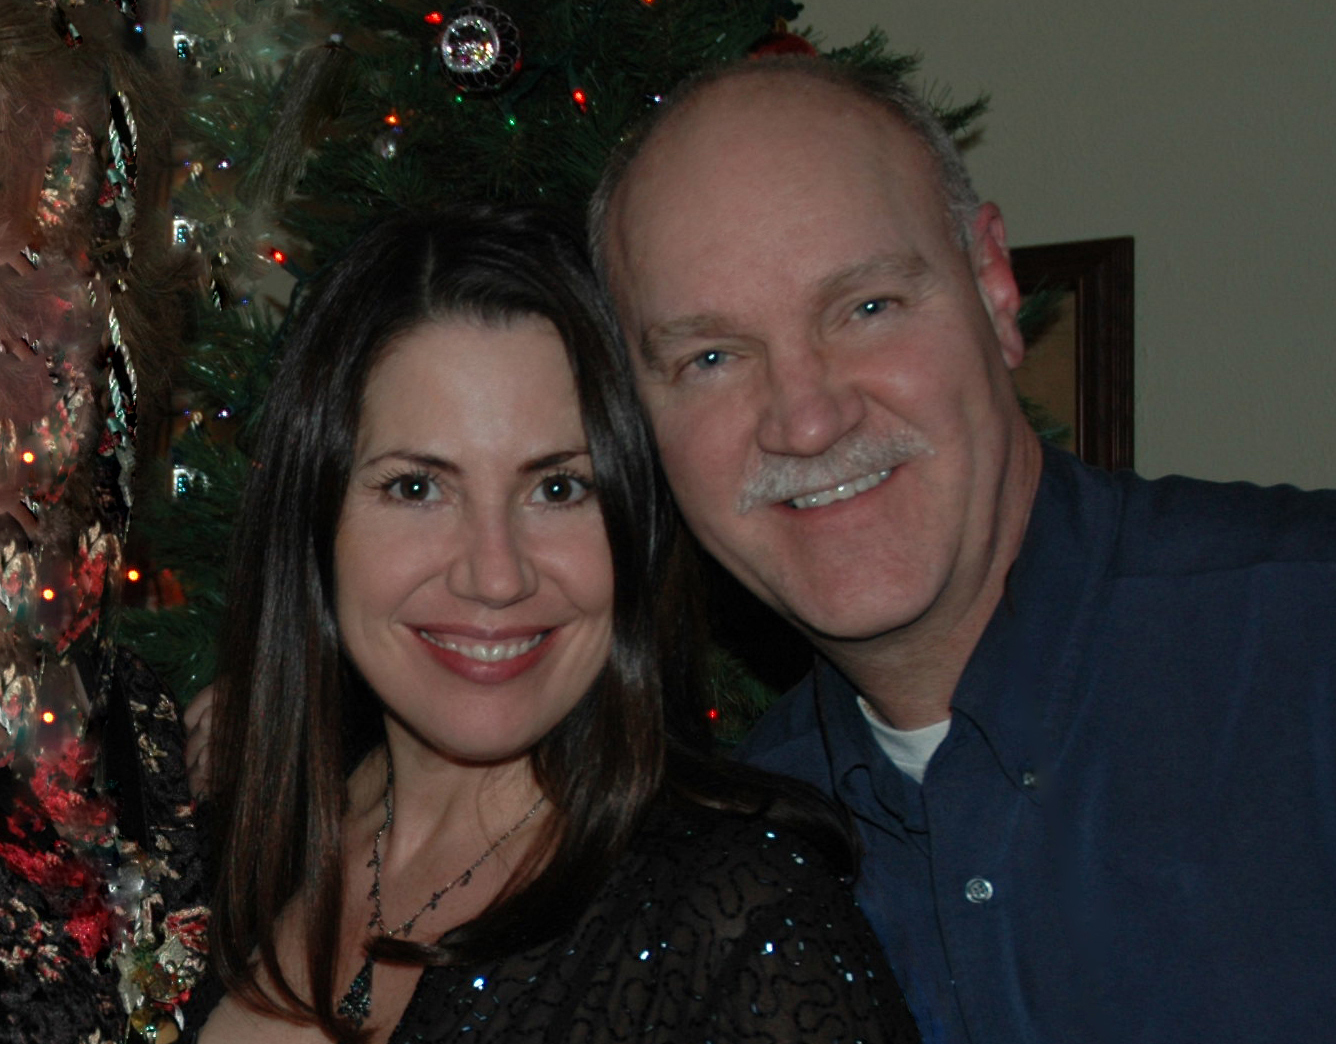 Ricka and Mike Powers in a 2006 Christmas photo.